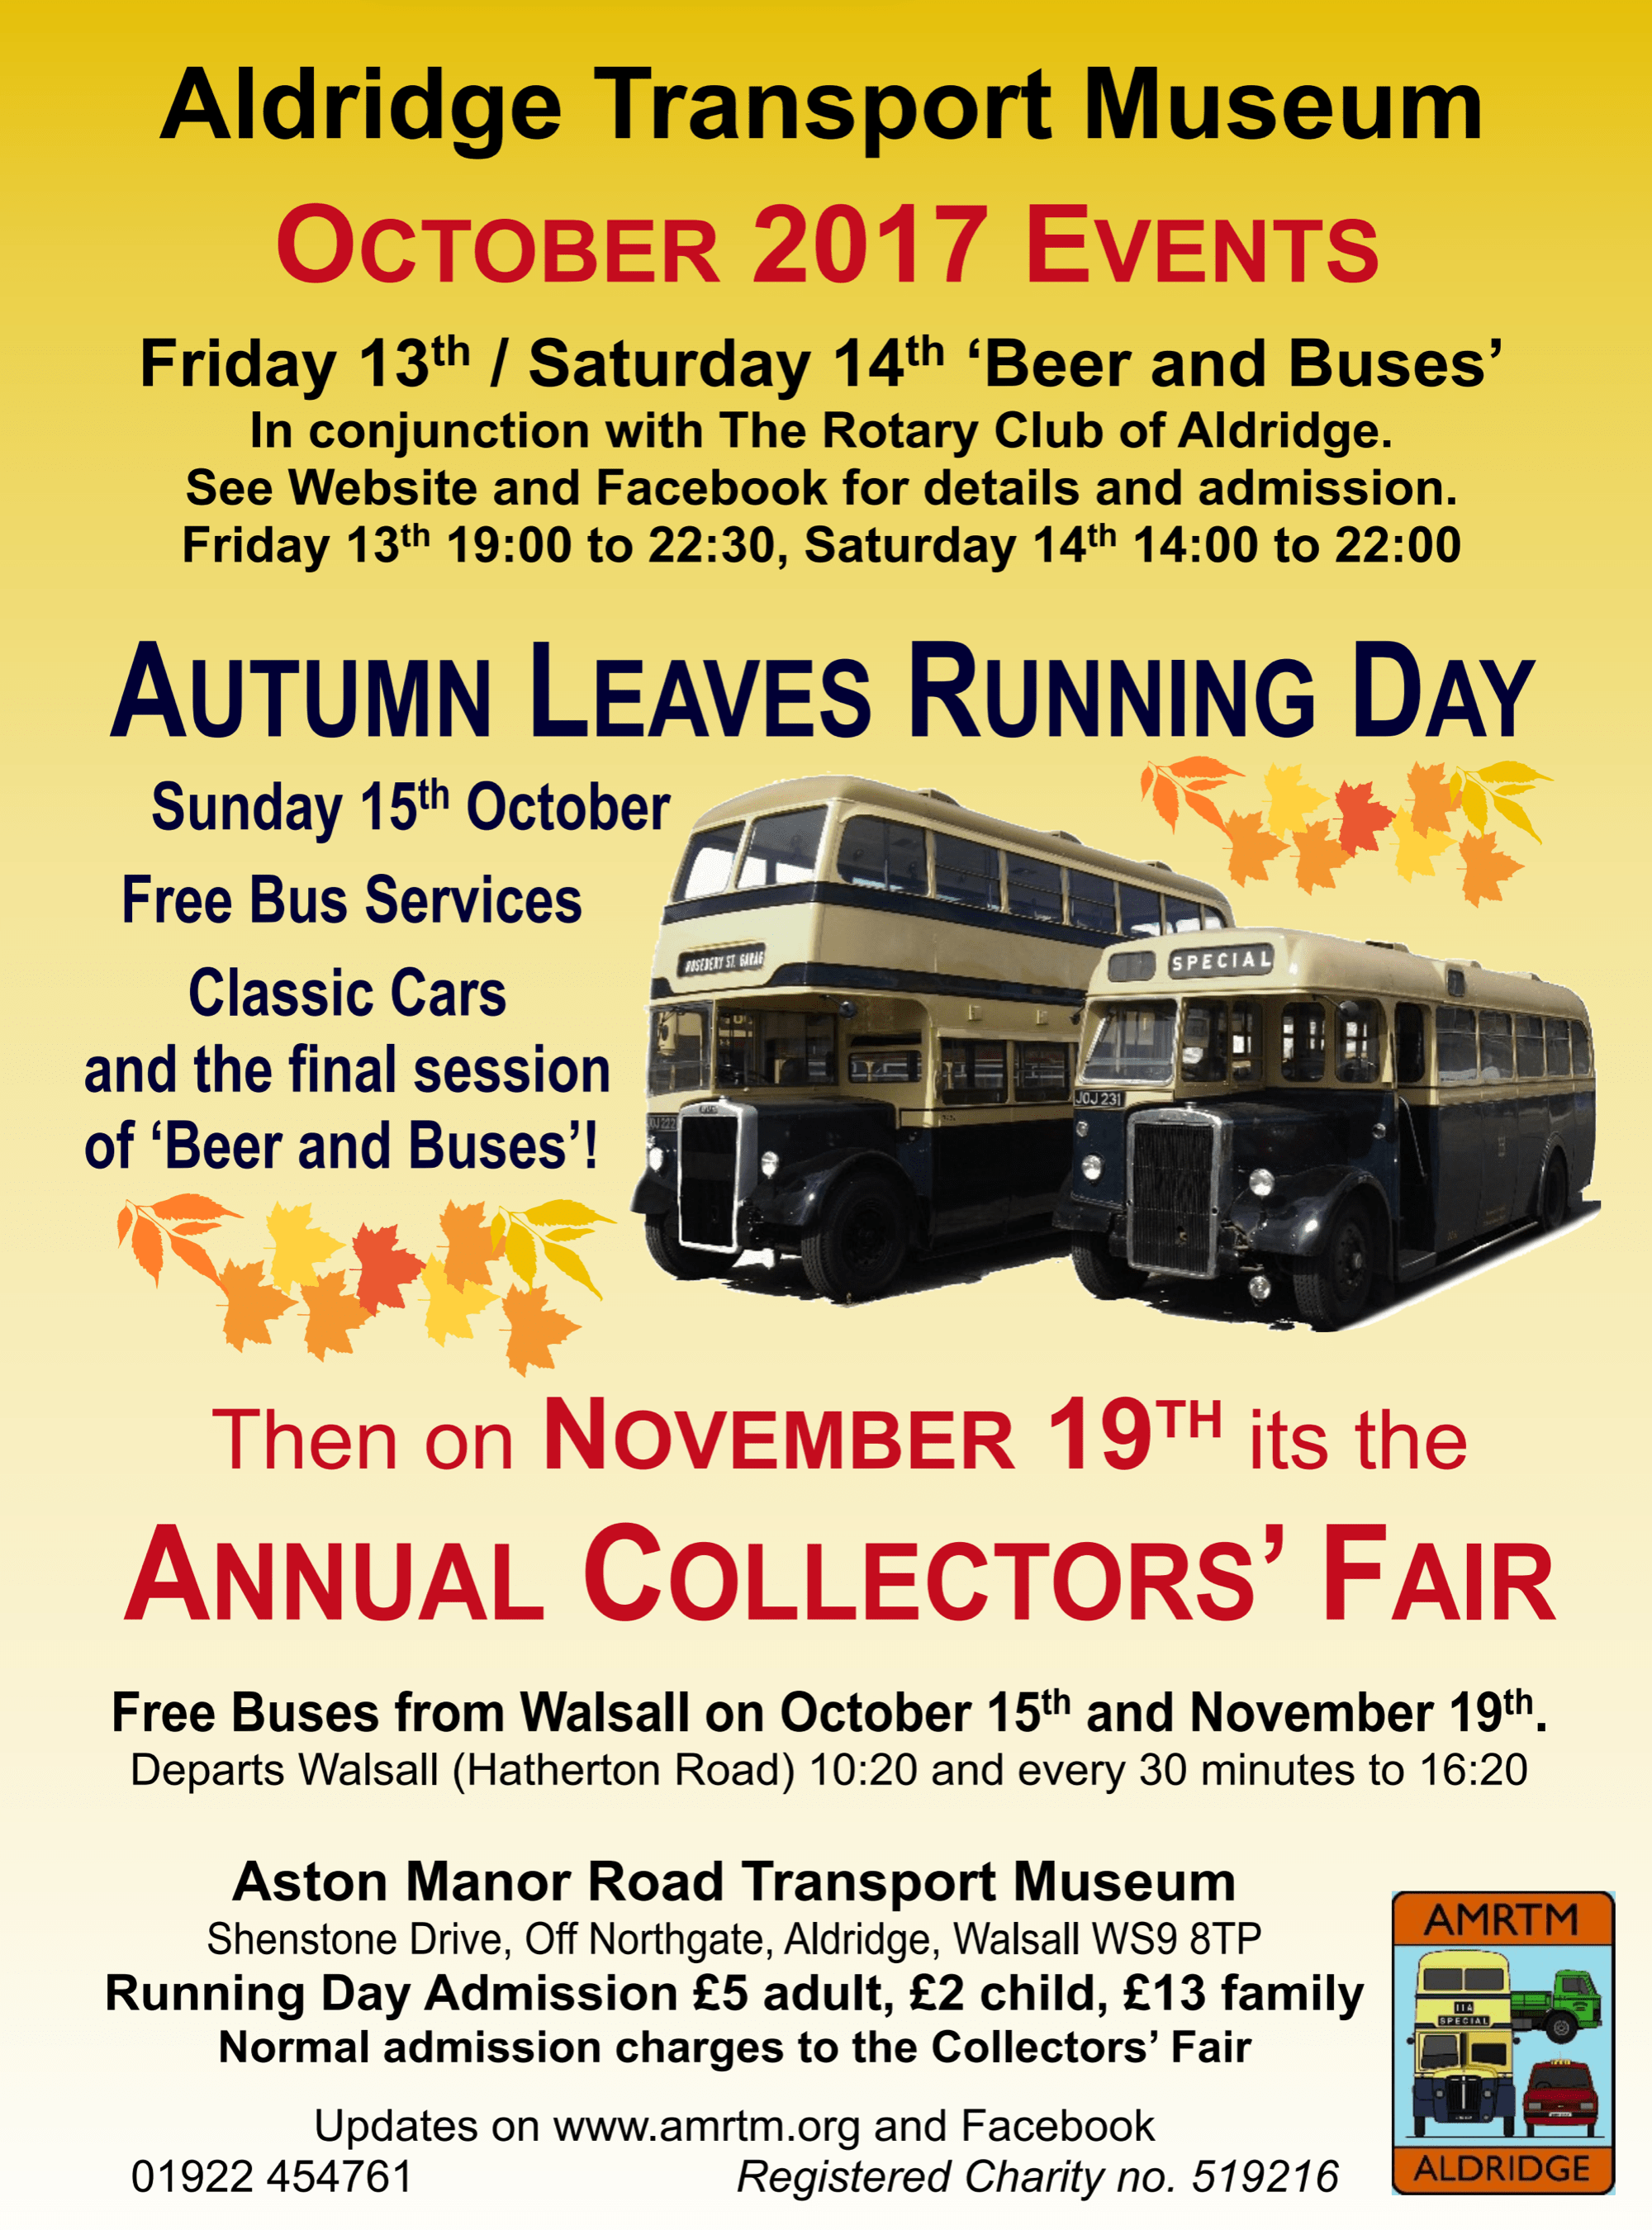 Autumn Leaves Running Day At Aldridge Transport Museum This Sunday And The Finale Of Beer And Buses